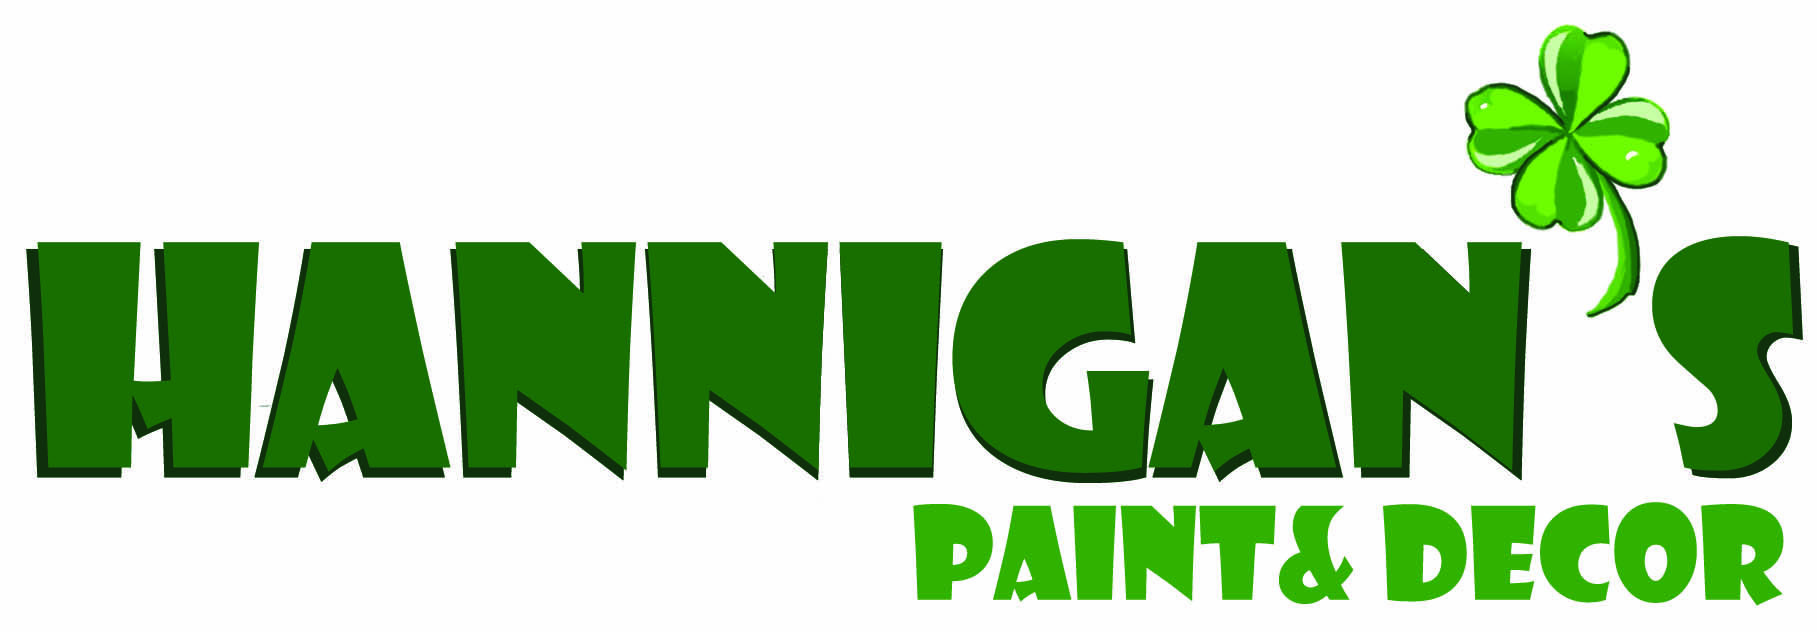 Hannigans Paint Decor Stores Calgary Ready To Serve All Click Here For Non Harmonized Colours Your Blinds And Needs